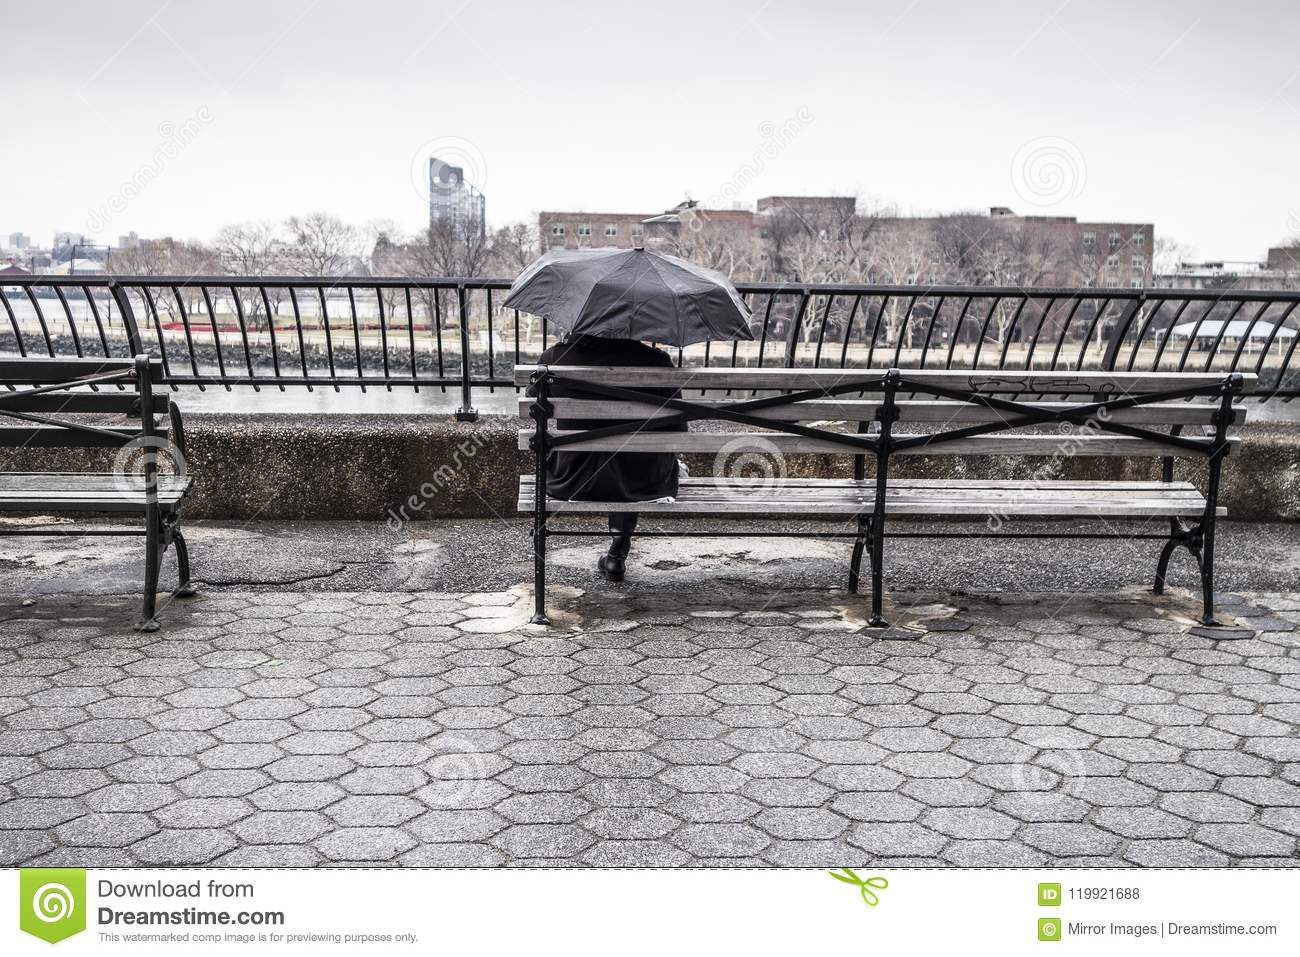 Man sitting on bench with umbrella in a water way park